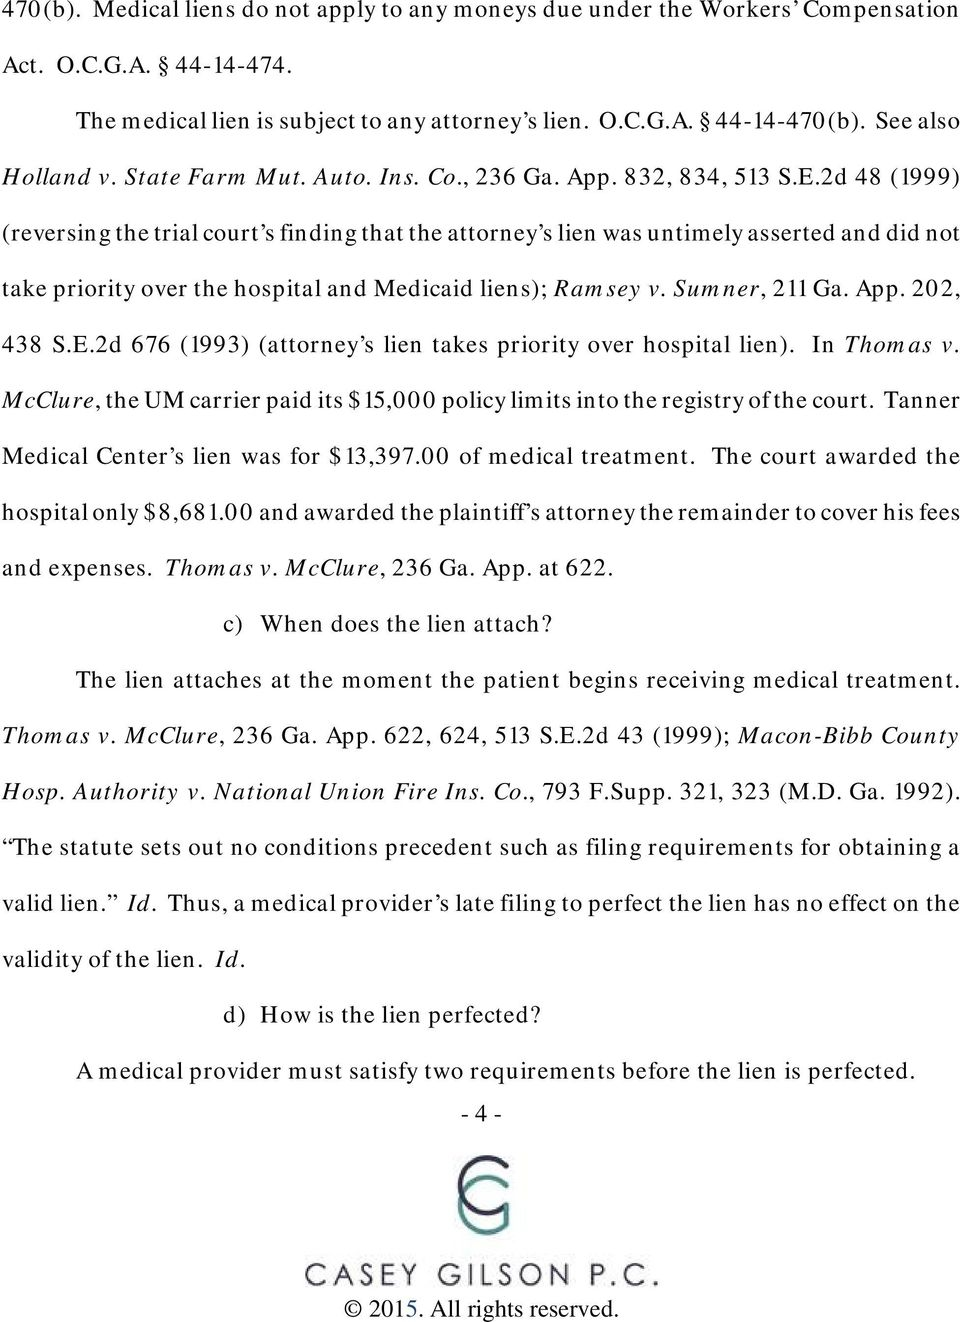 2d 48 (1999) (reversing the trial court s finding that the attorney s lien was untimely asserted and did not take priority over the hospital and Medicaid liens); Ramsey v. Sumner, 211 Ga. App.